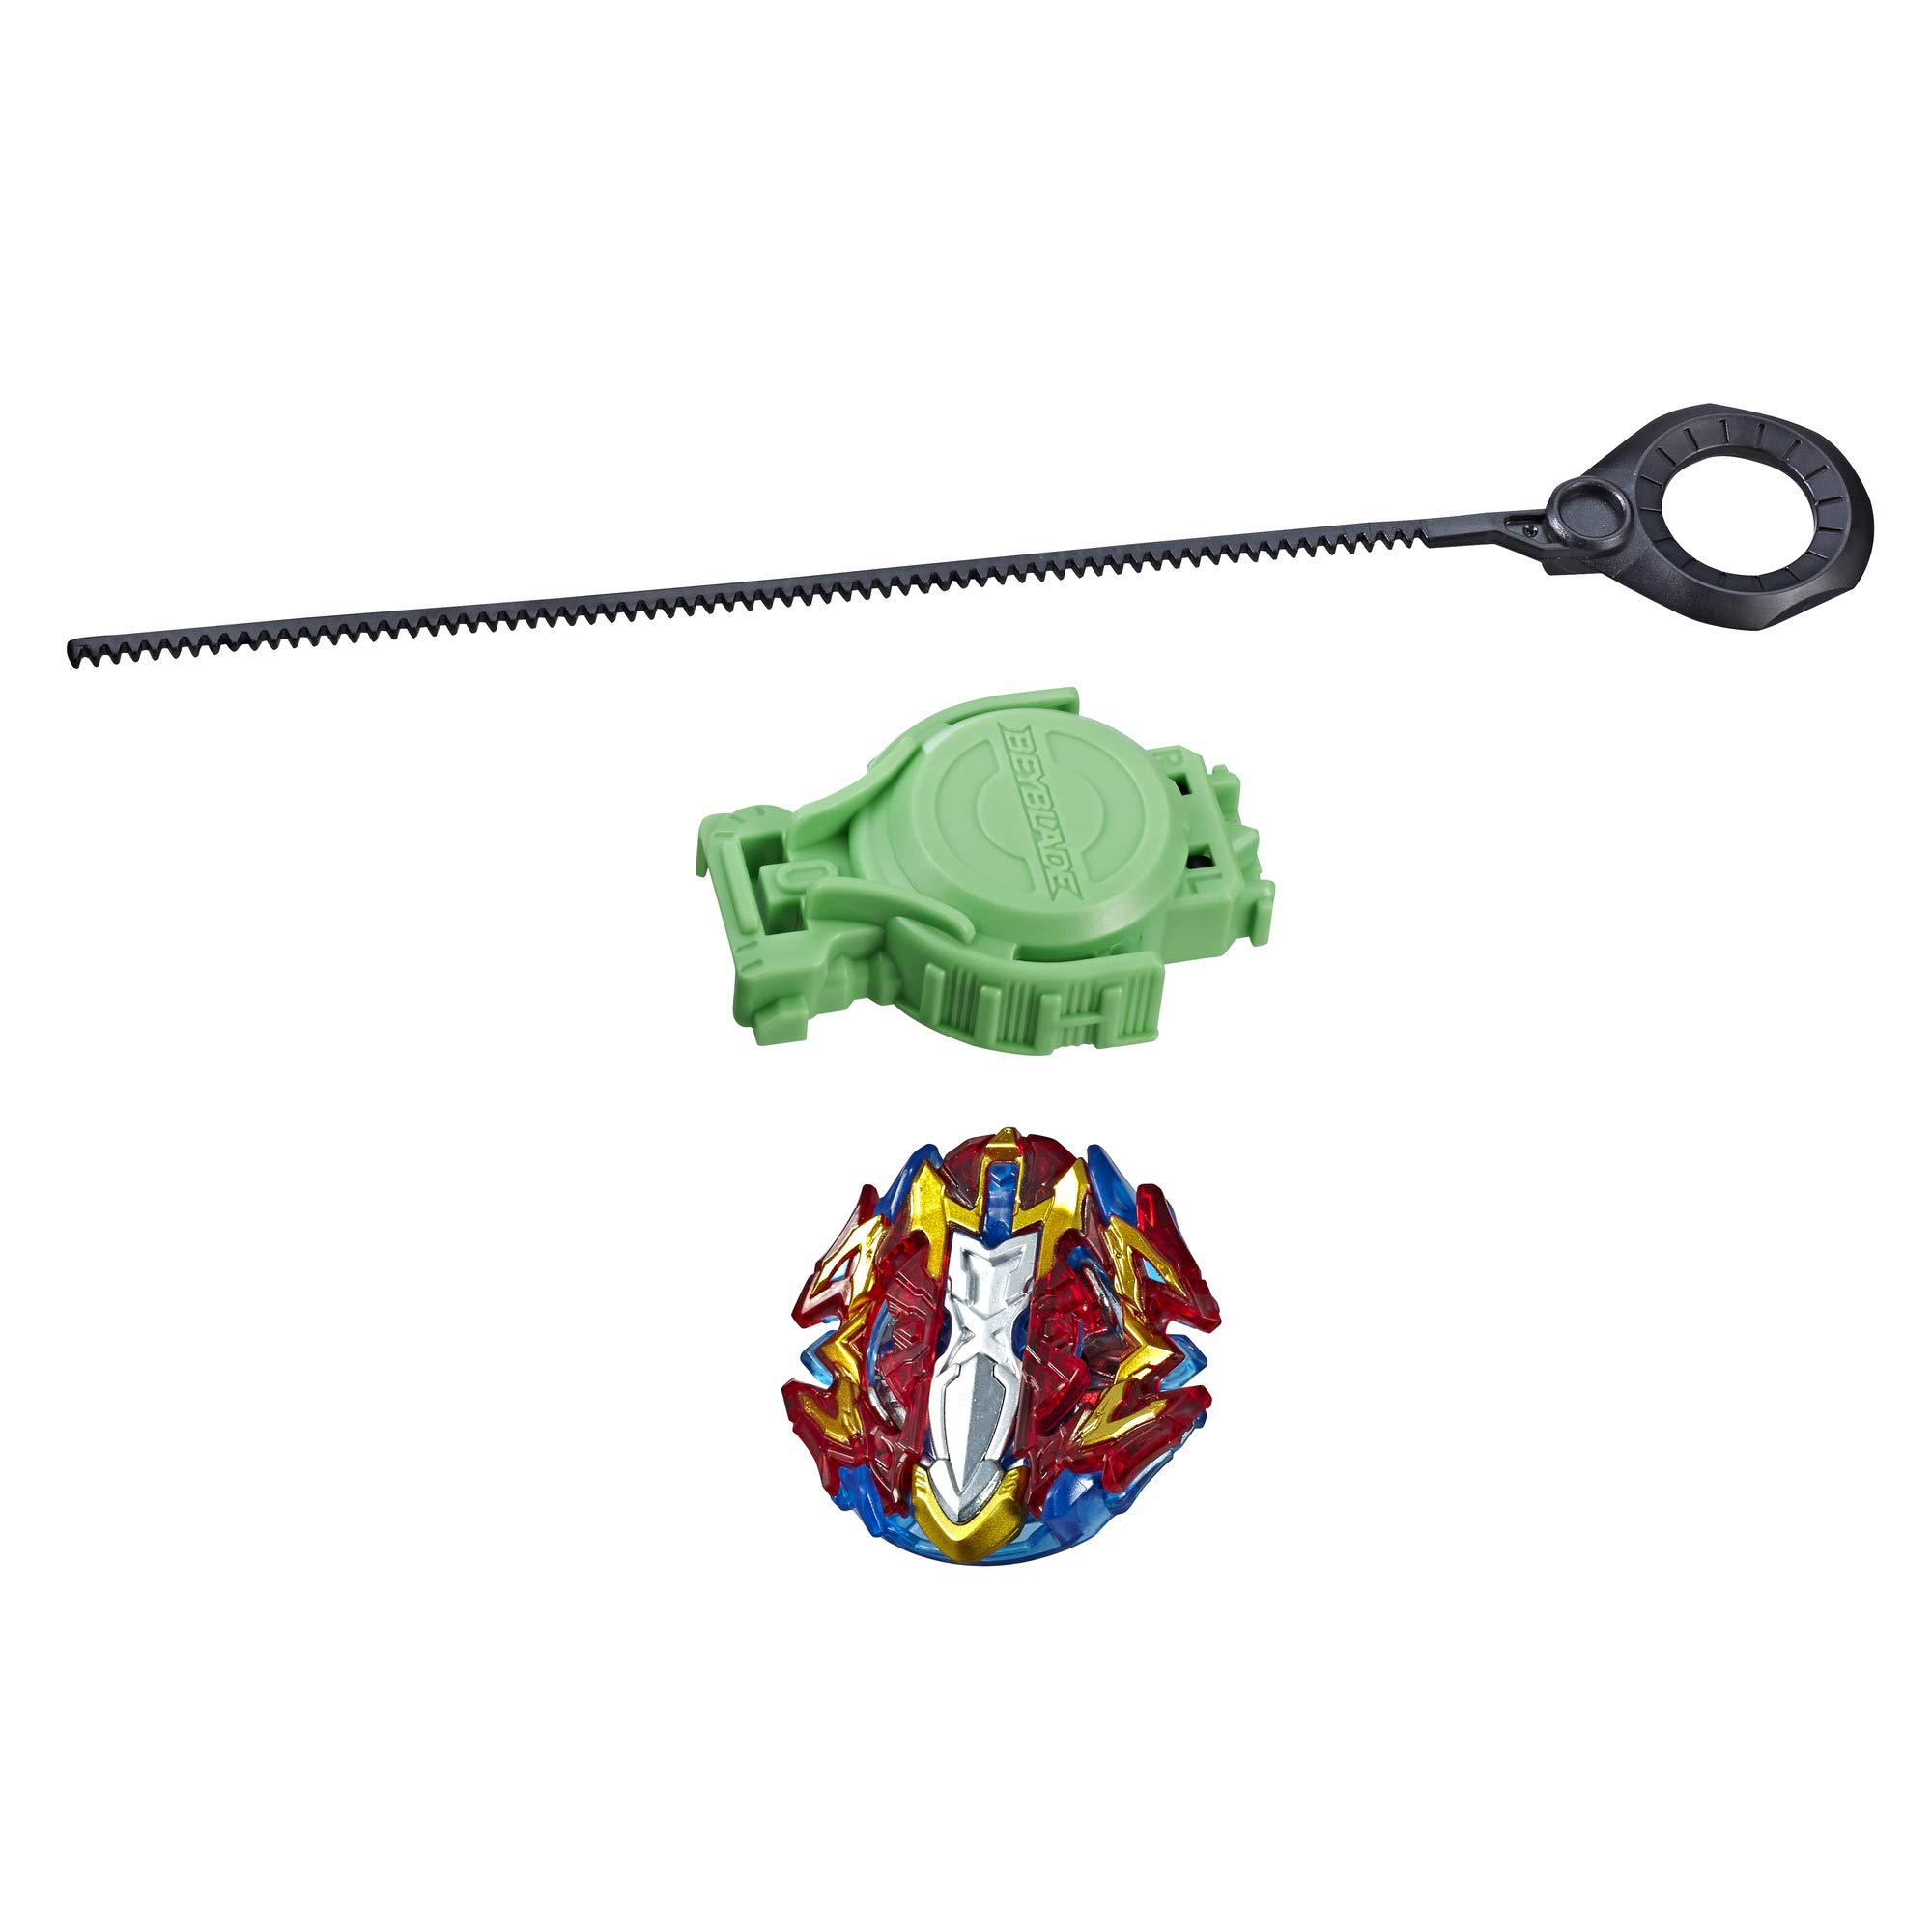 BEYBLADE Burst Turbo Slingshock Xcalius X4 Starter Pack -- Battling Top & Right/Left-Spin Launcher, Age 8+ by BEYBLADE